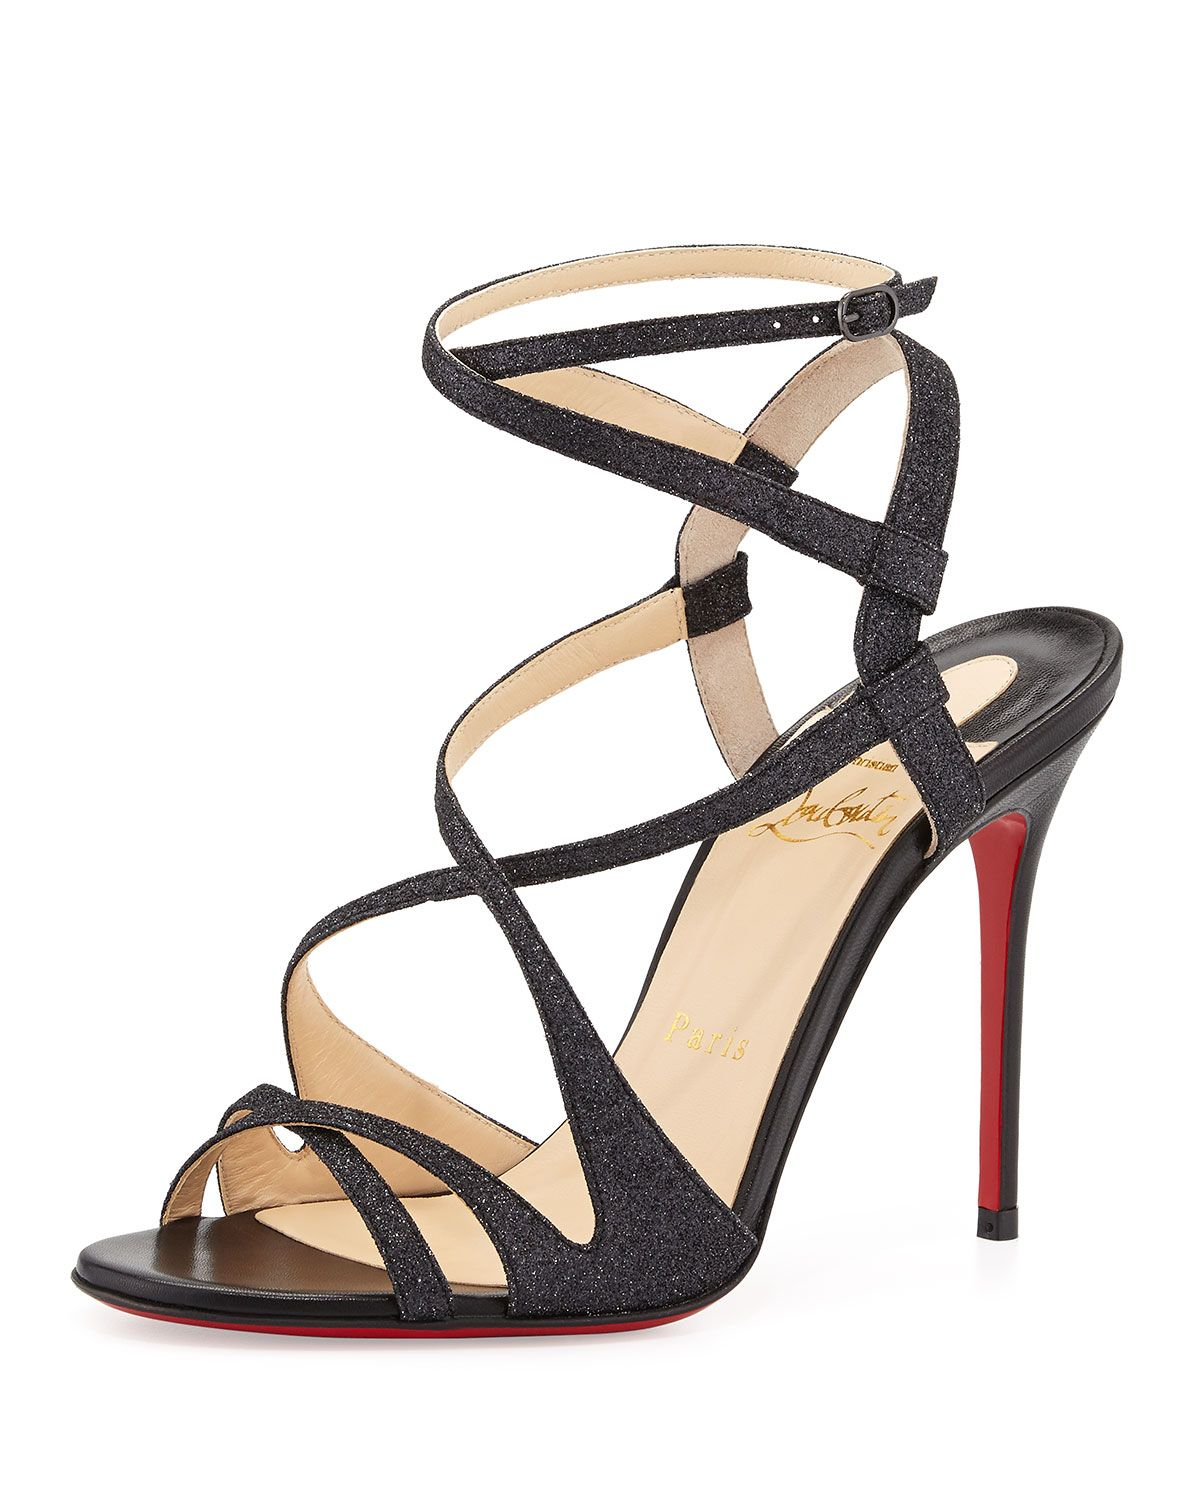 Shoes Louboutin Strappy SandalFun Christian Stuff 1JcKT3lF